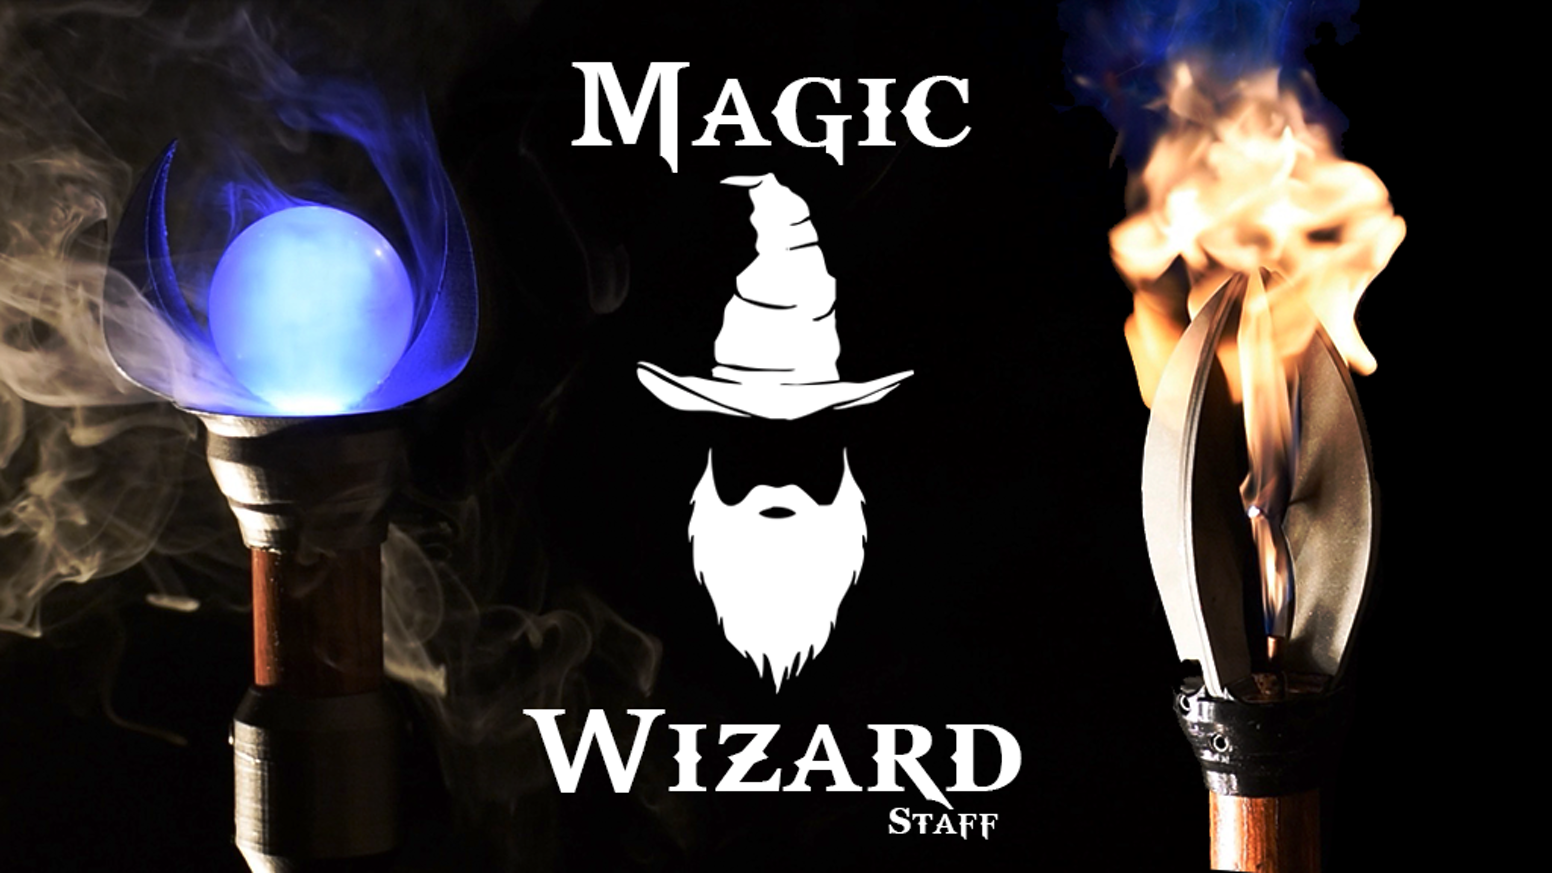 Magic Wizard Staff By Magic Wizard Staff Kickstarter